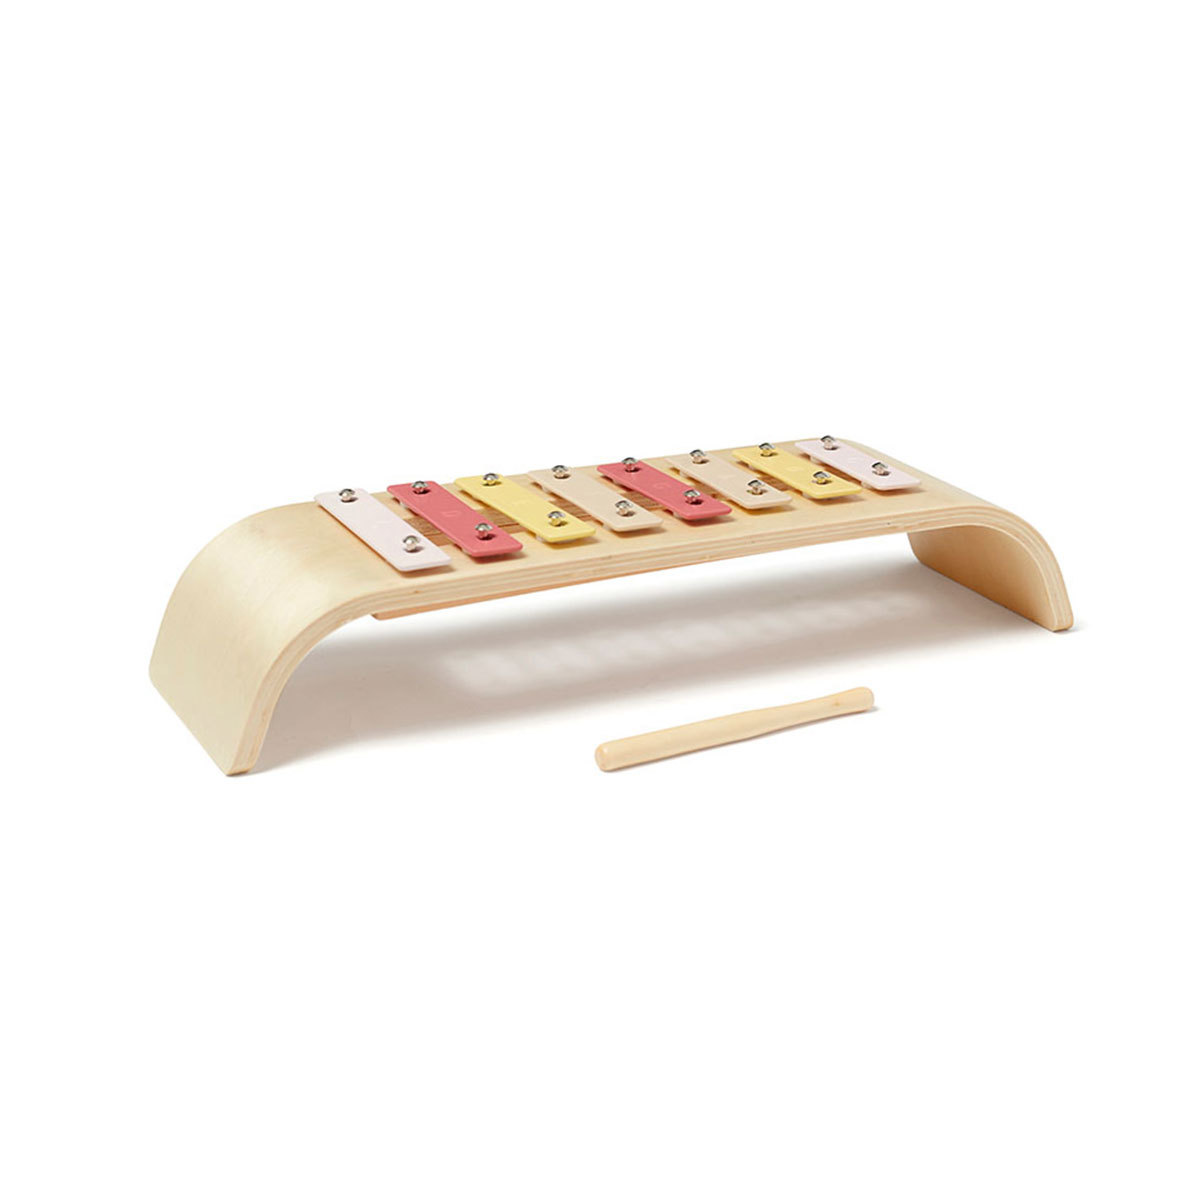 Mes premiers jouets Xylophone - Rose